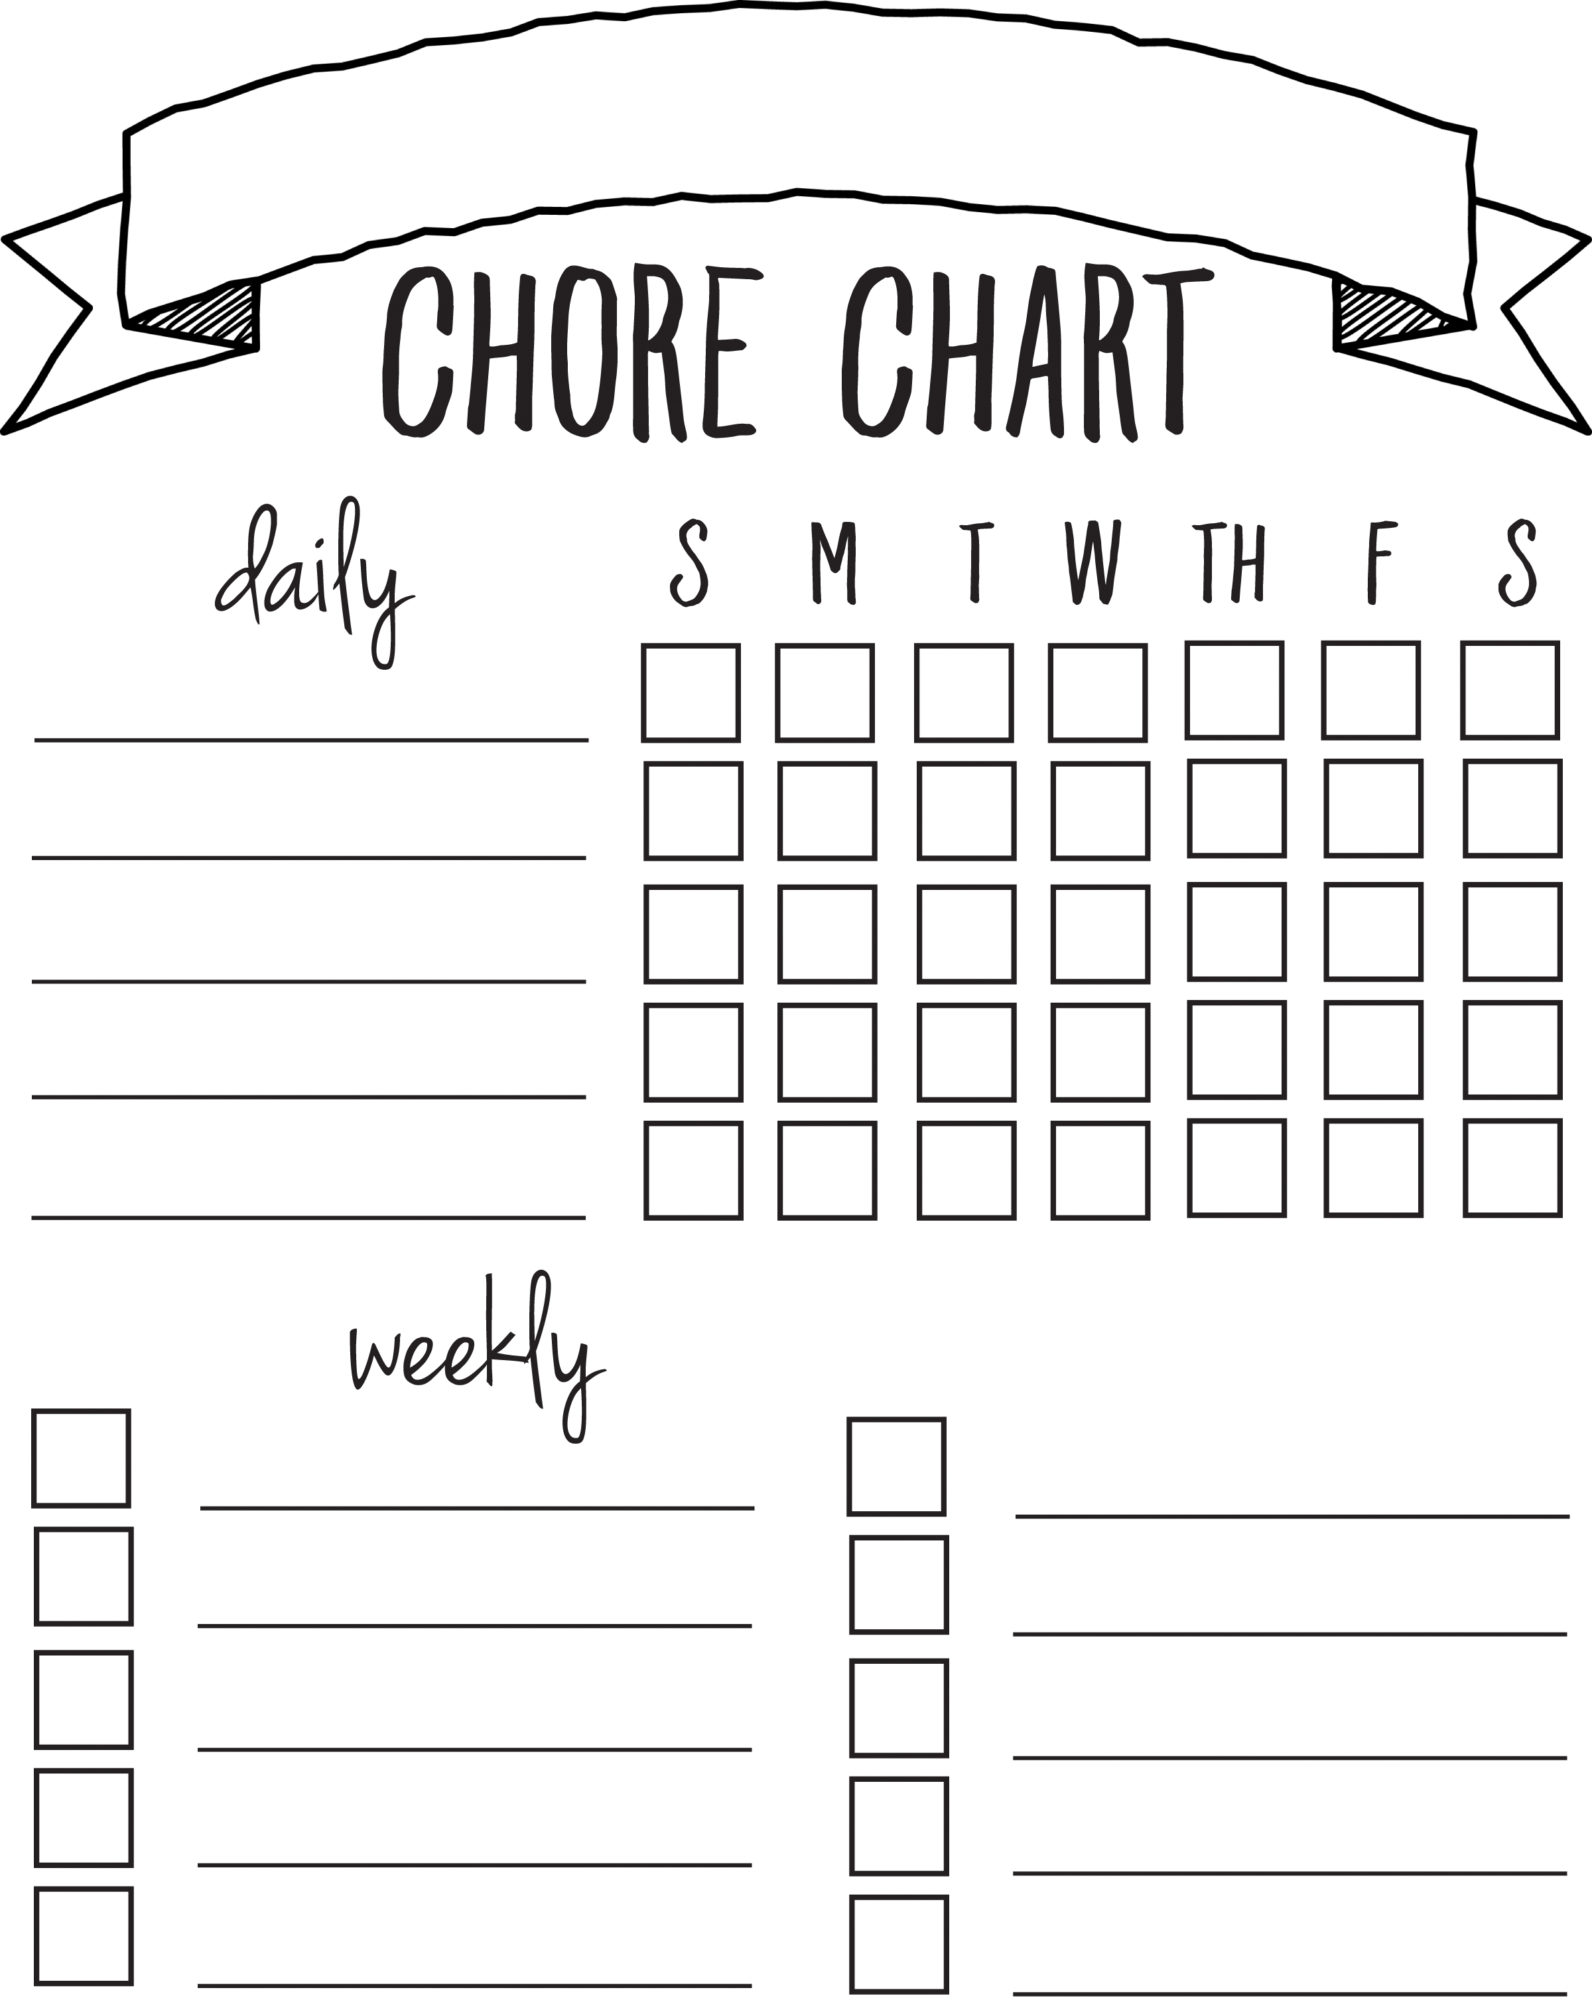 photograph regarding Chore Chart for Adults Printable Free named Do it yourself Printable Chore Chart - Sincerely, Sara D.